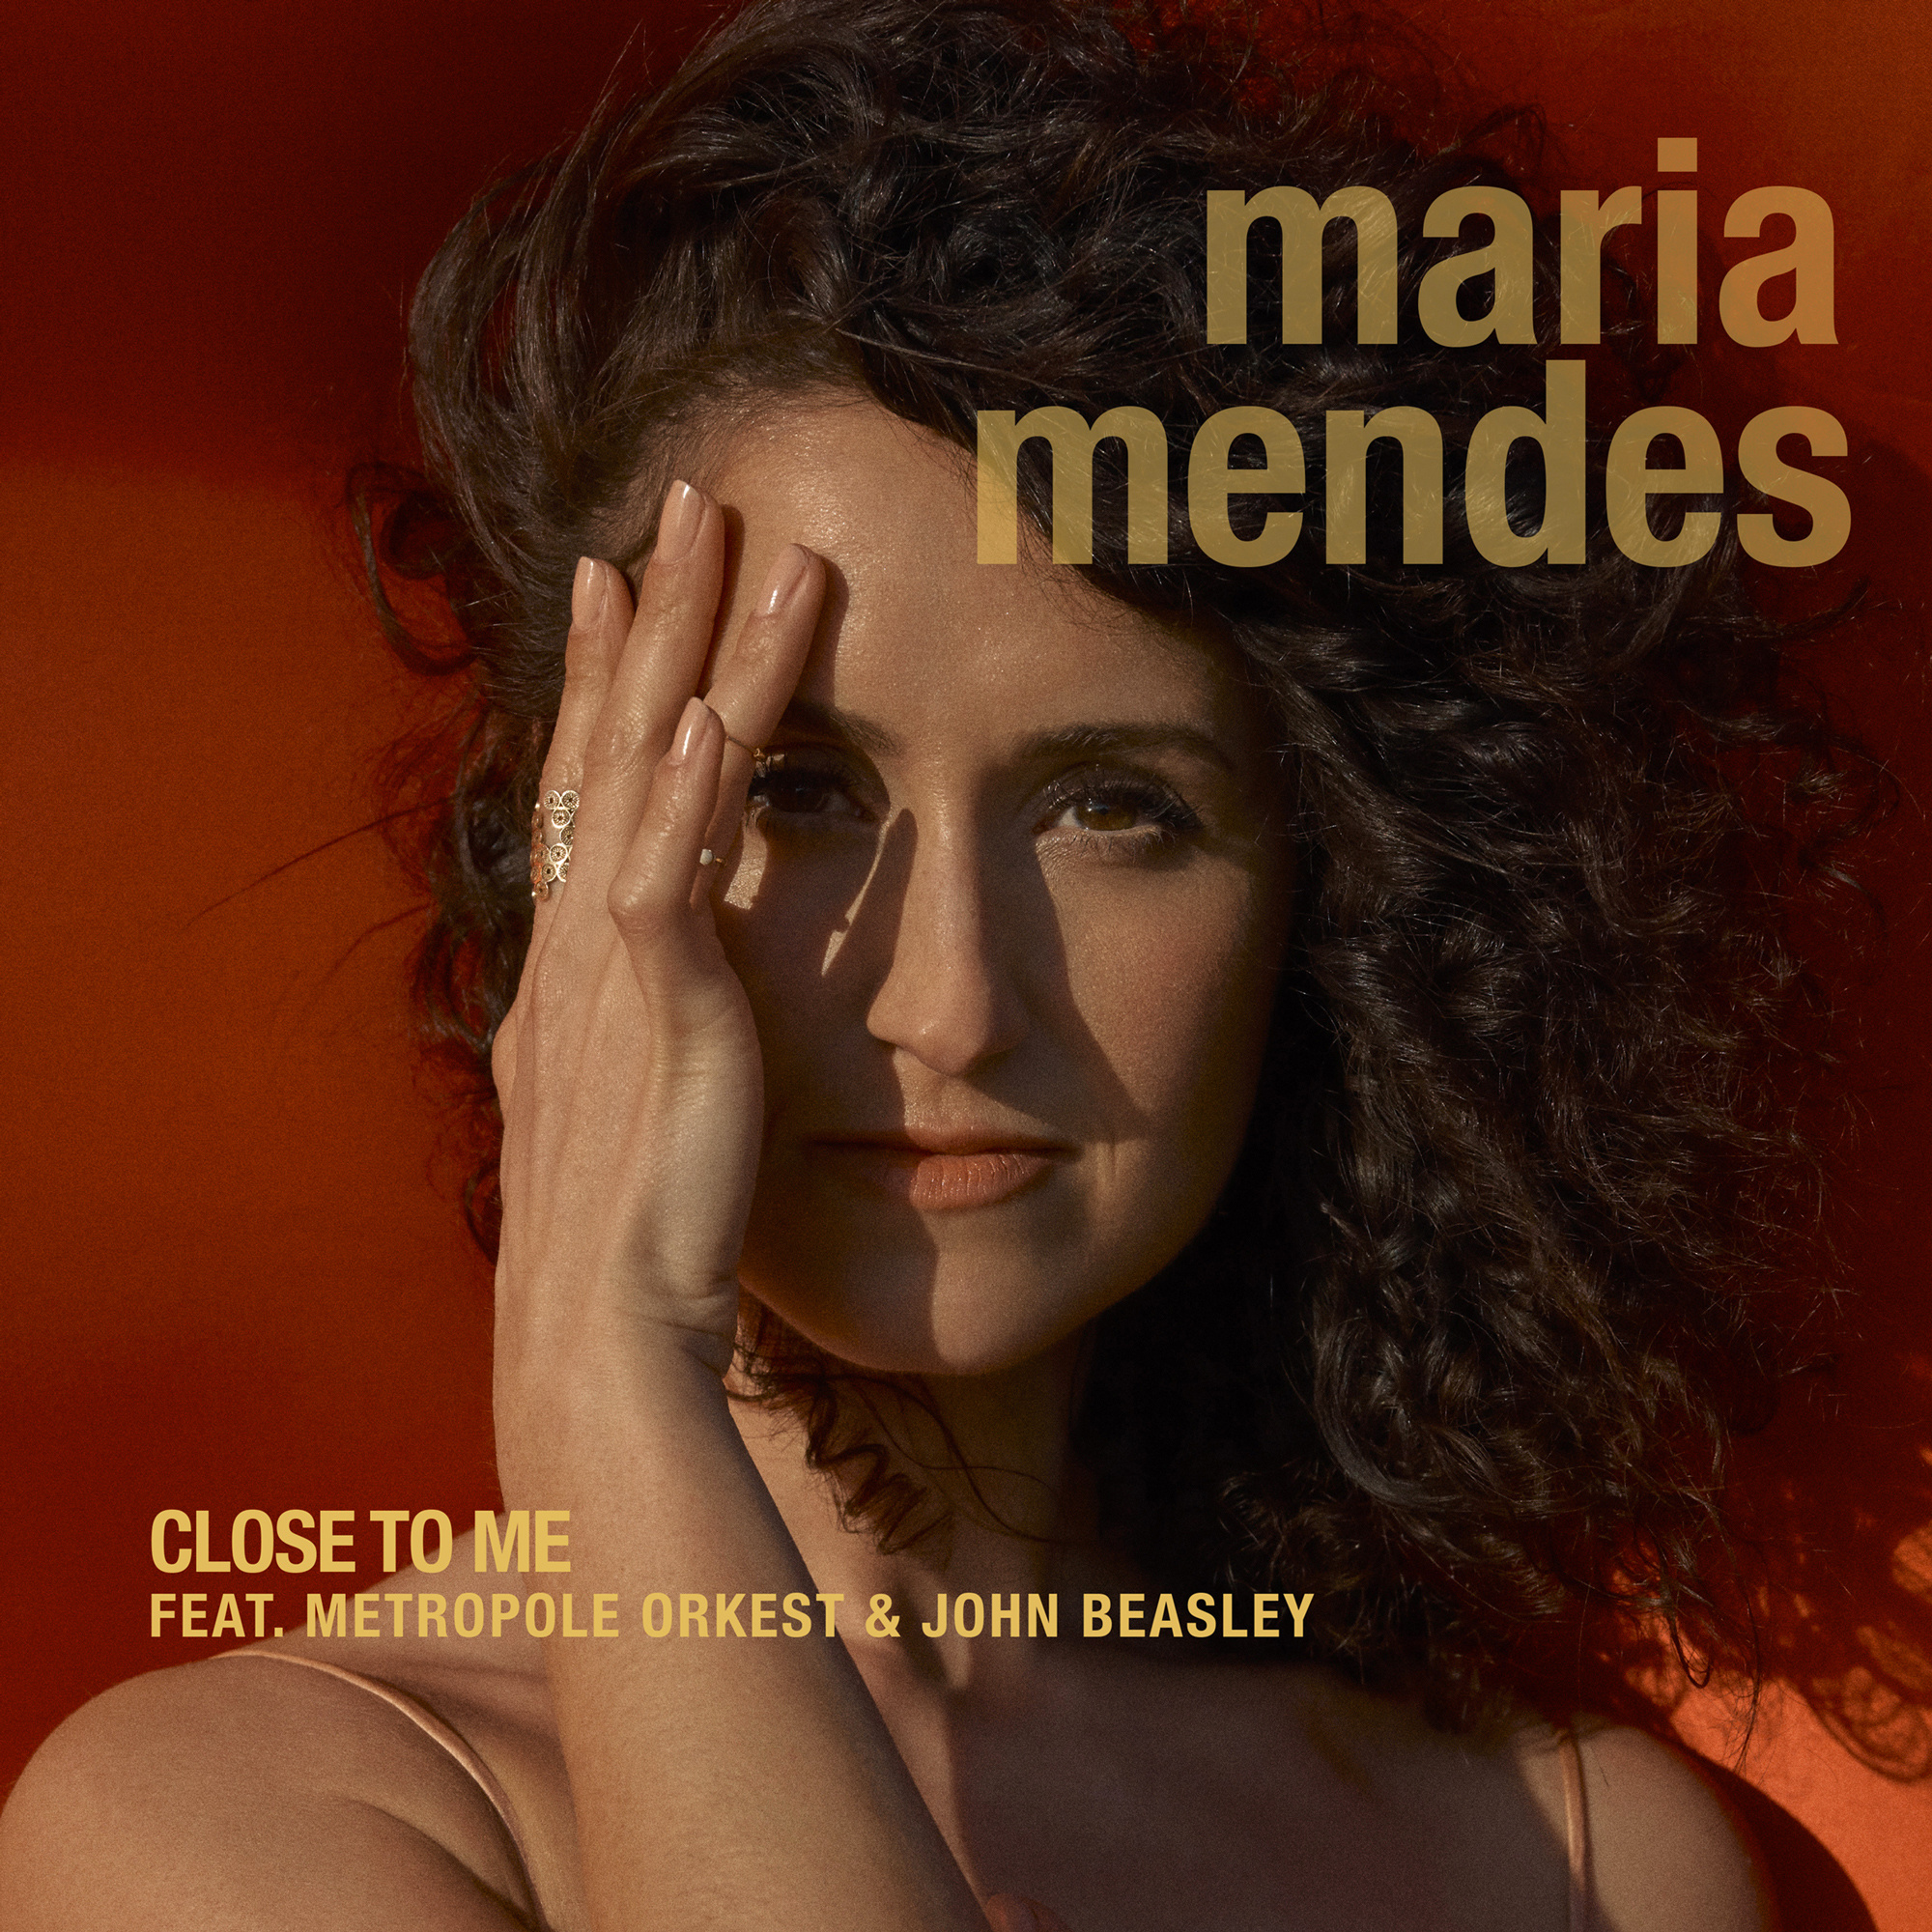 Maria Mendes - Close To Me (feat Metropole Orkest & John Beasley)